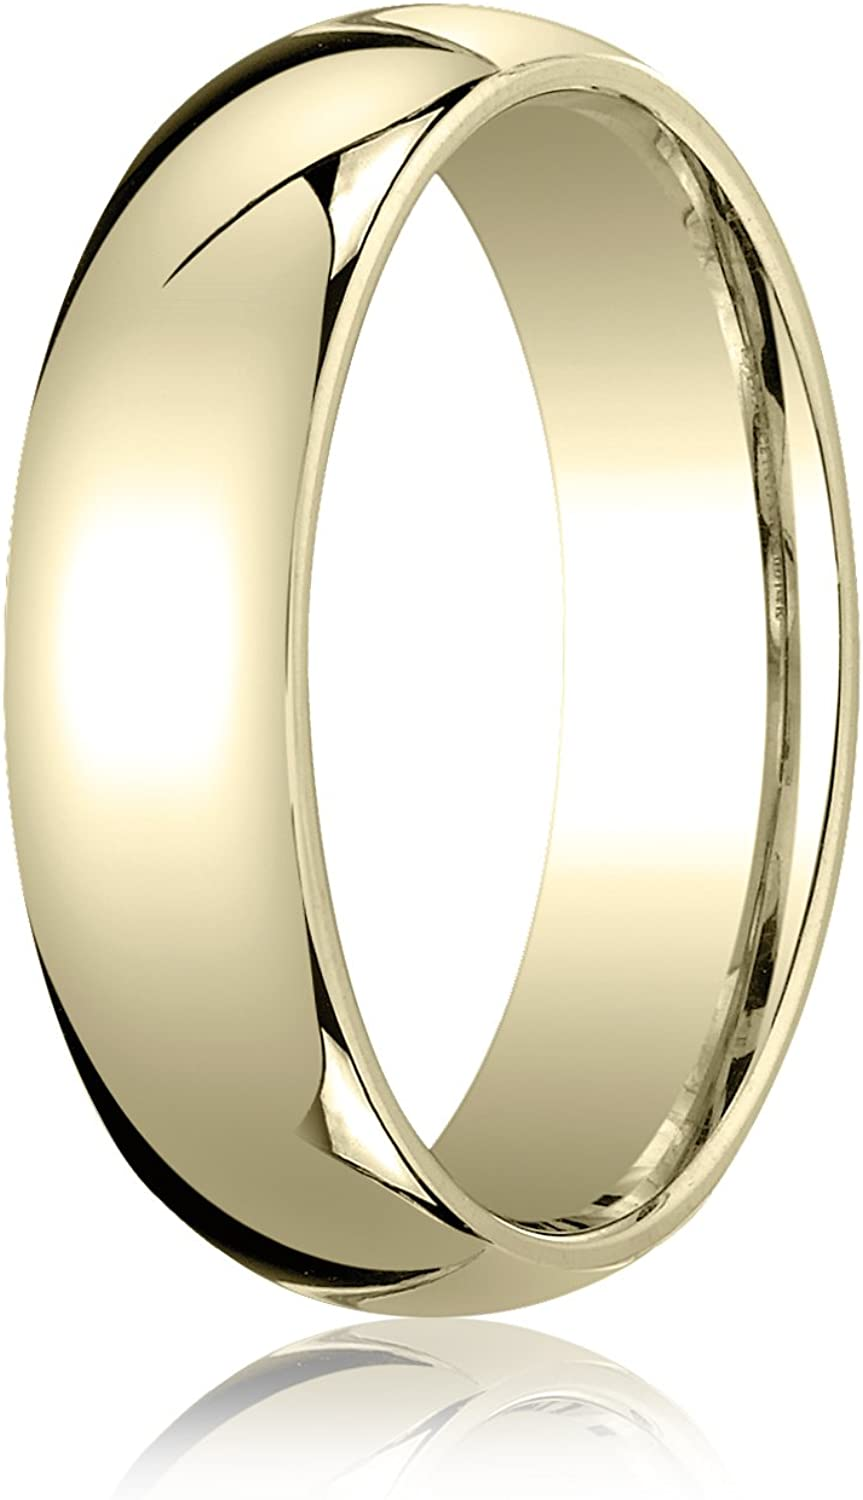 Men's 14K Yellow Gold 6mm Slightly Domed Standard Comfort Fit Wedding Band Ring